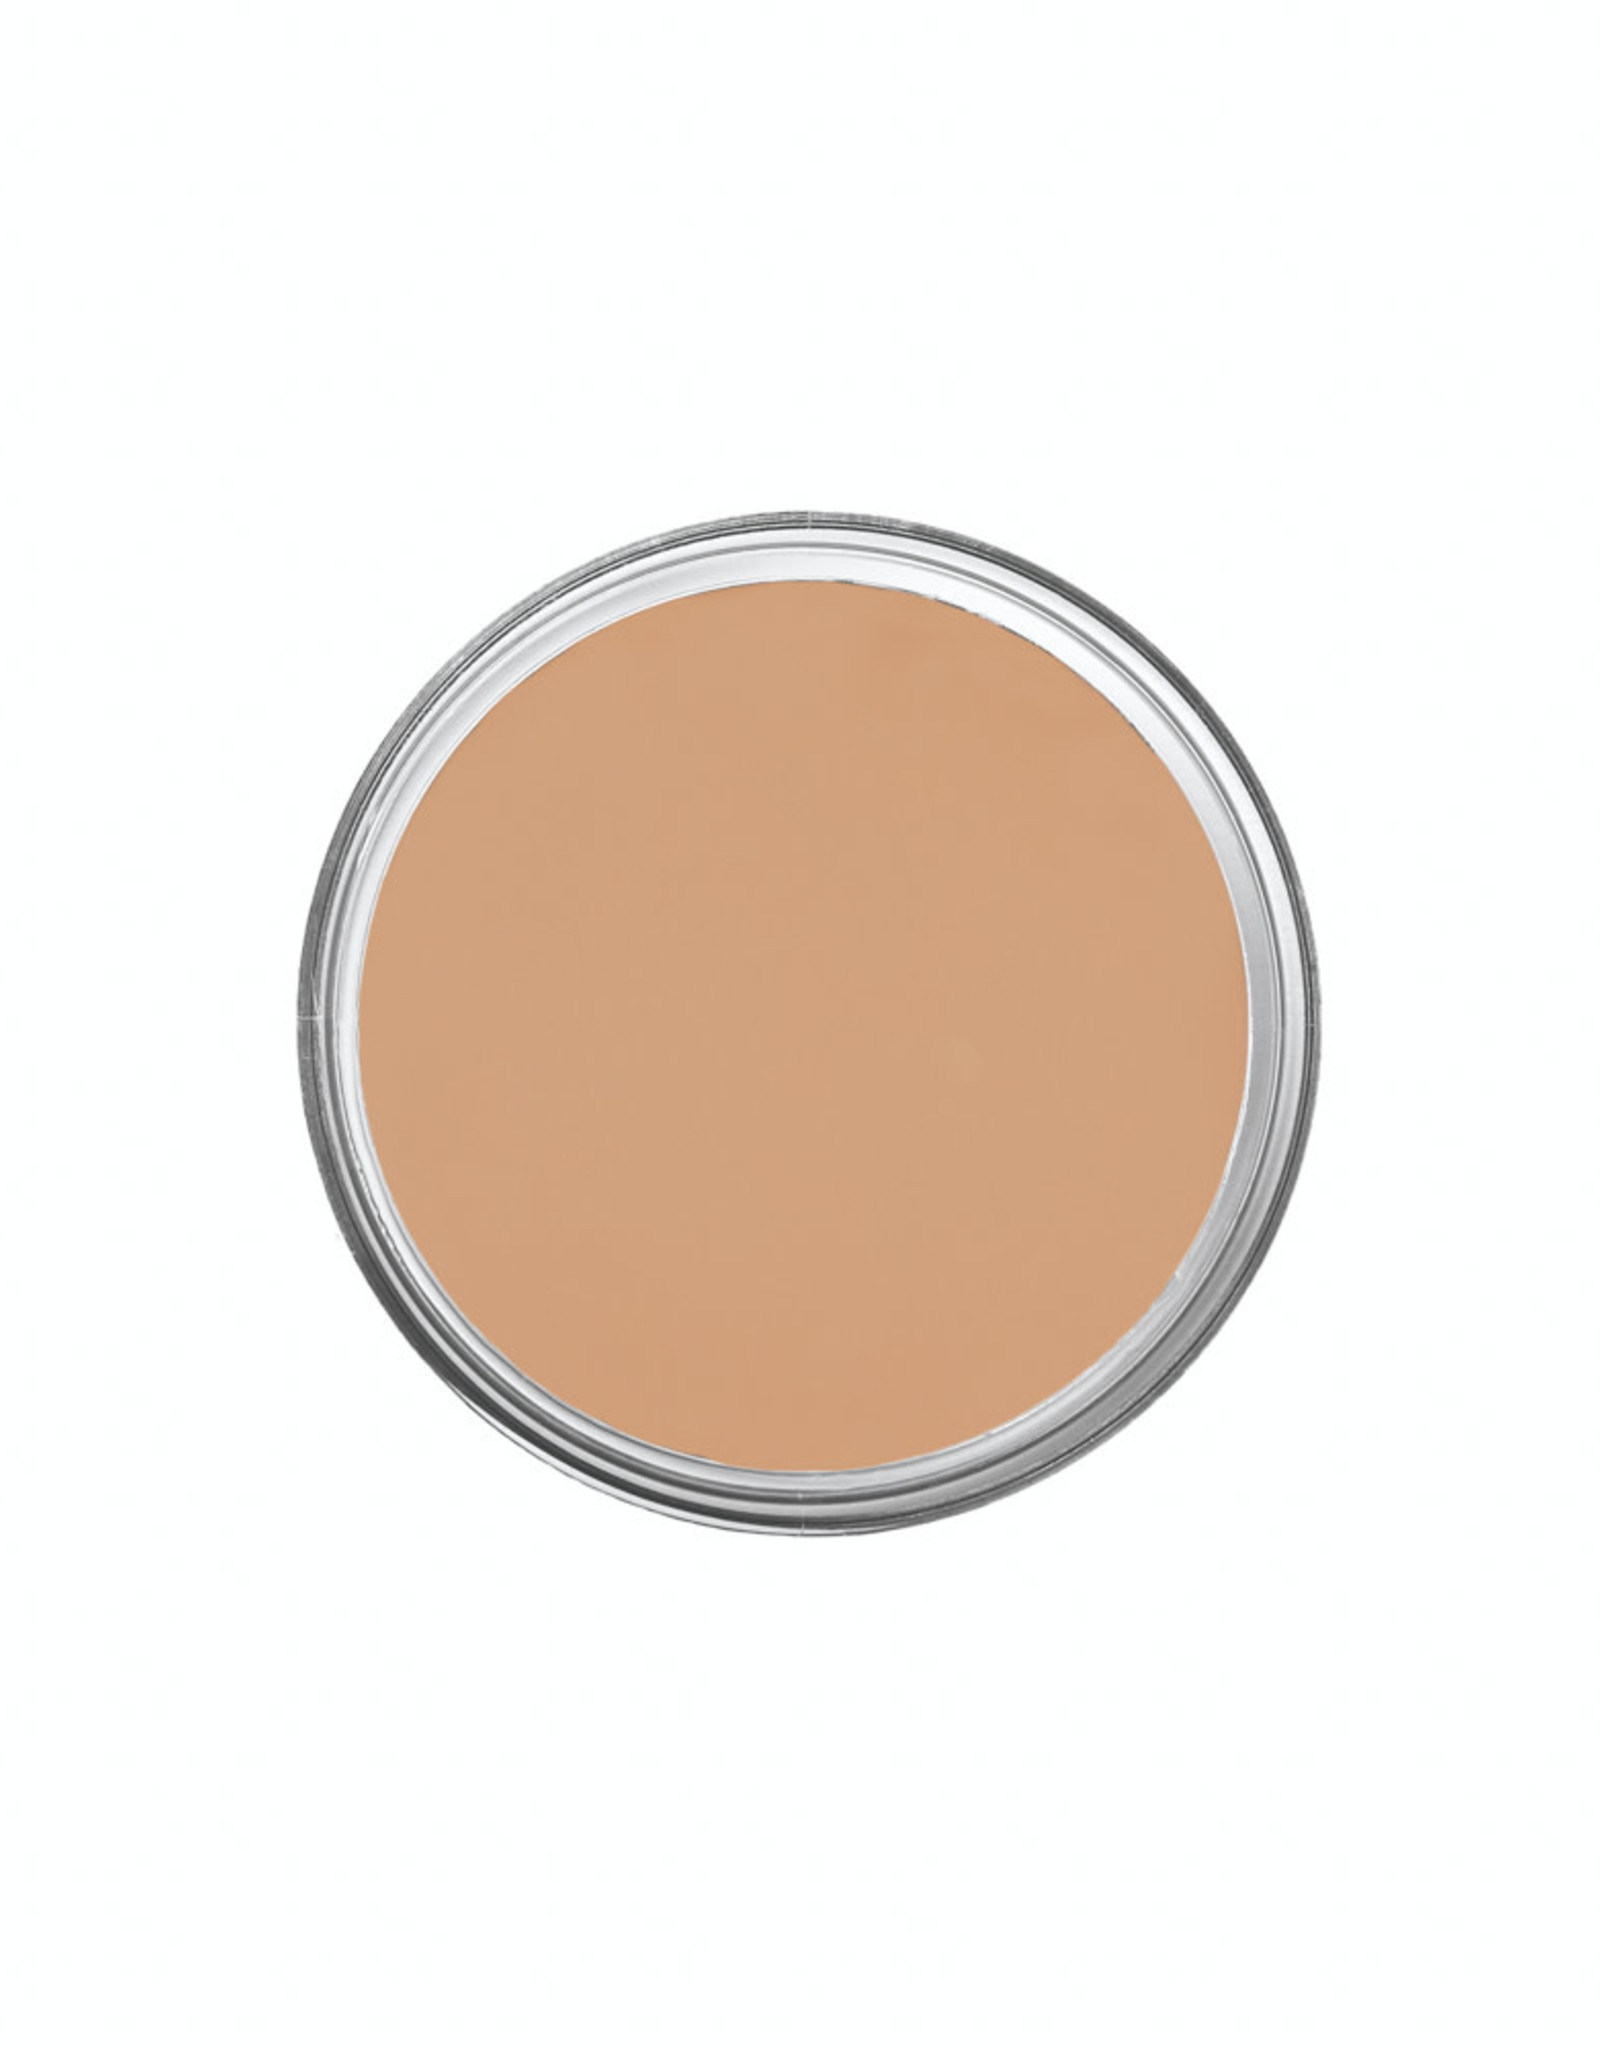 Ben Nye FOUNDATION-MATTE HD, BEIGE NAT. 3, .5 OZ